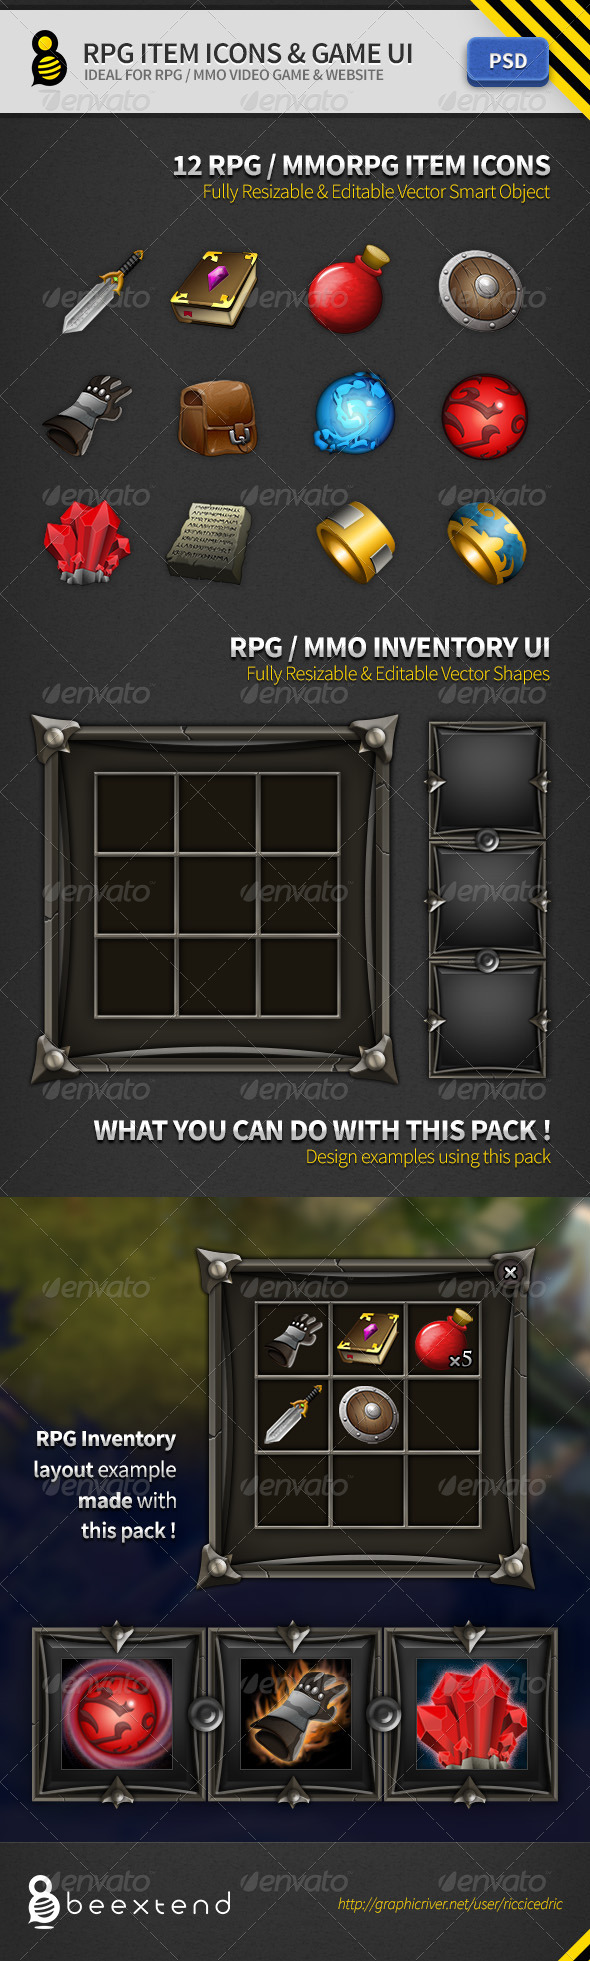 GraphicRiver RPG Item Icons & Game UI 2795948